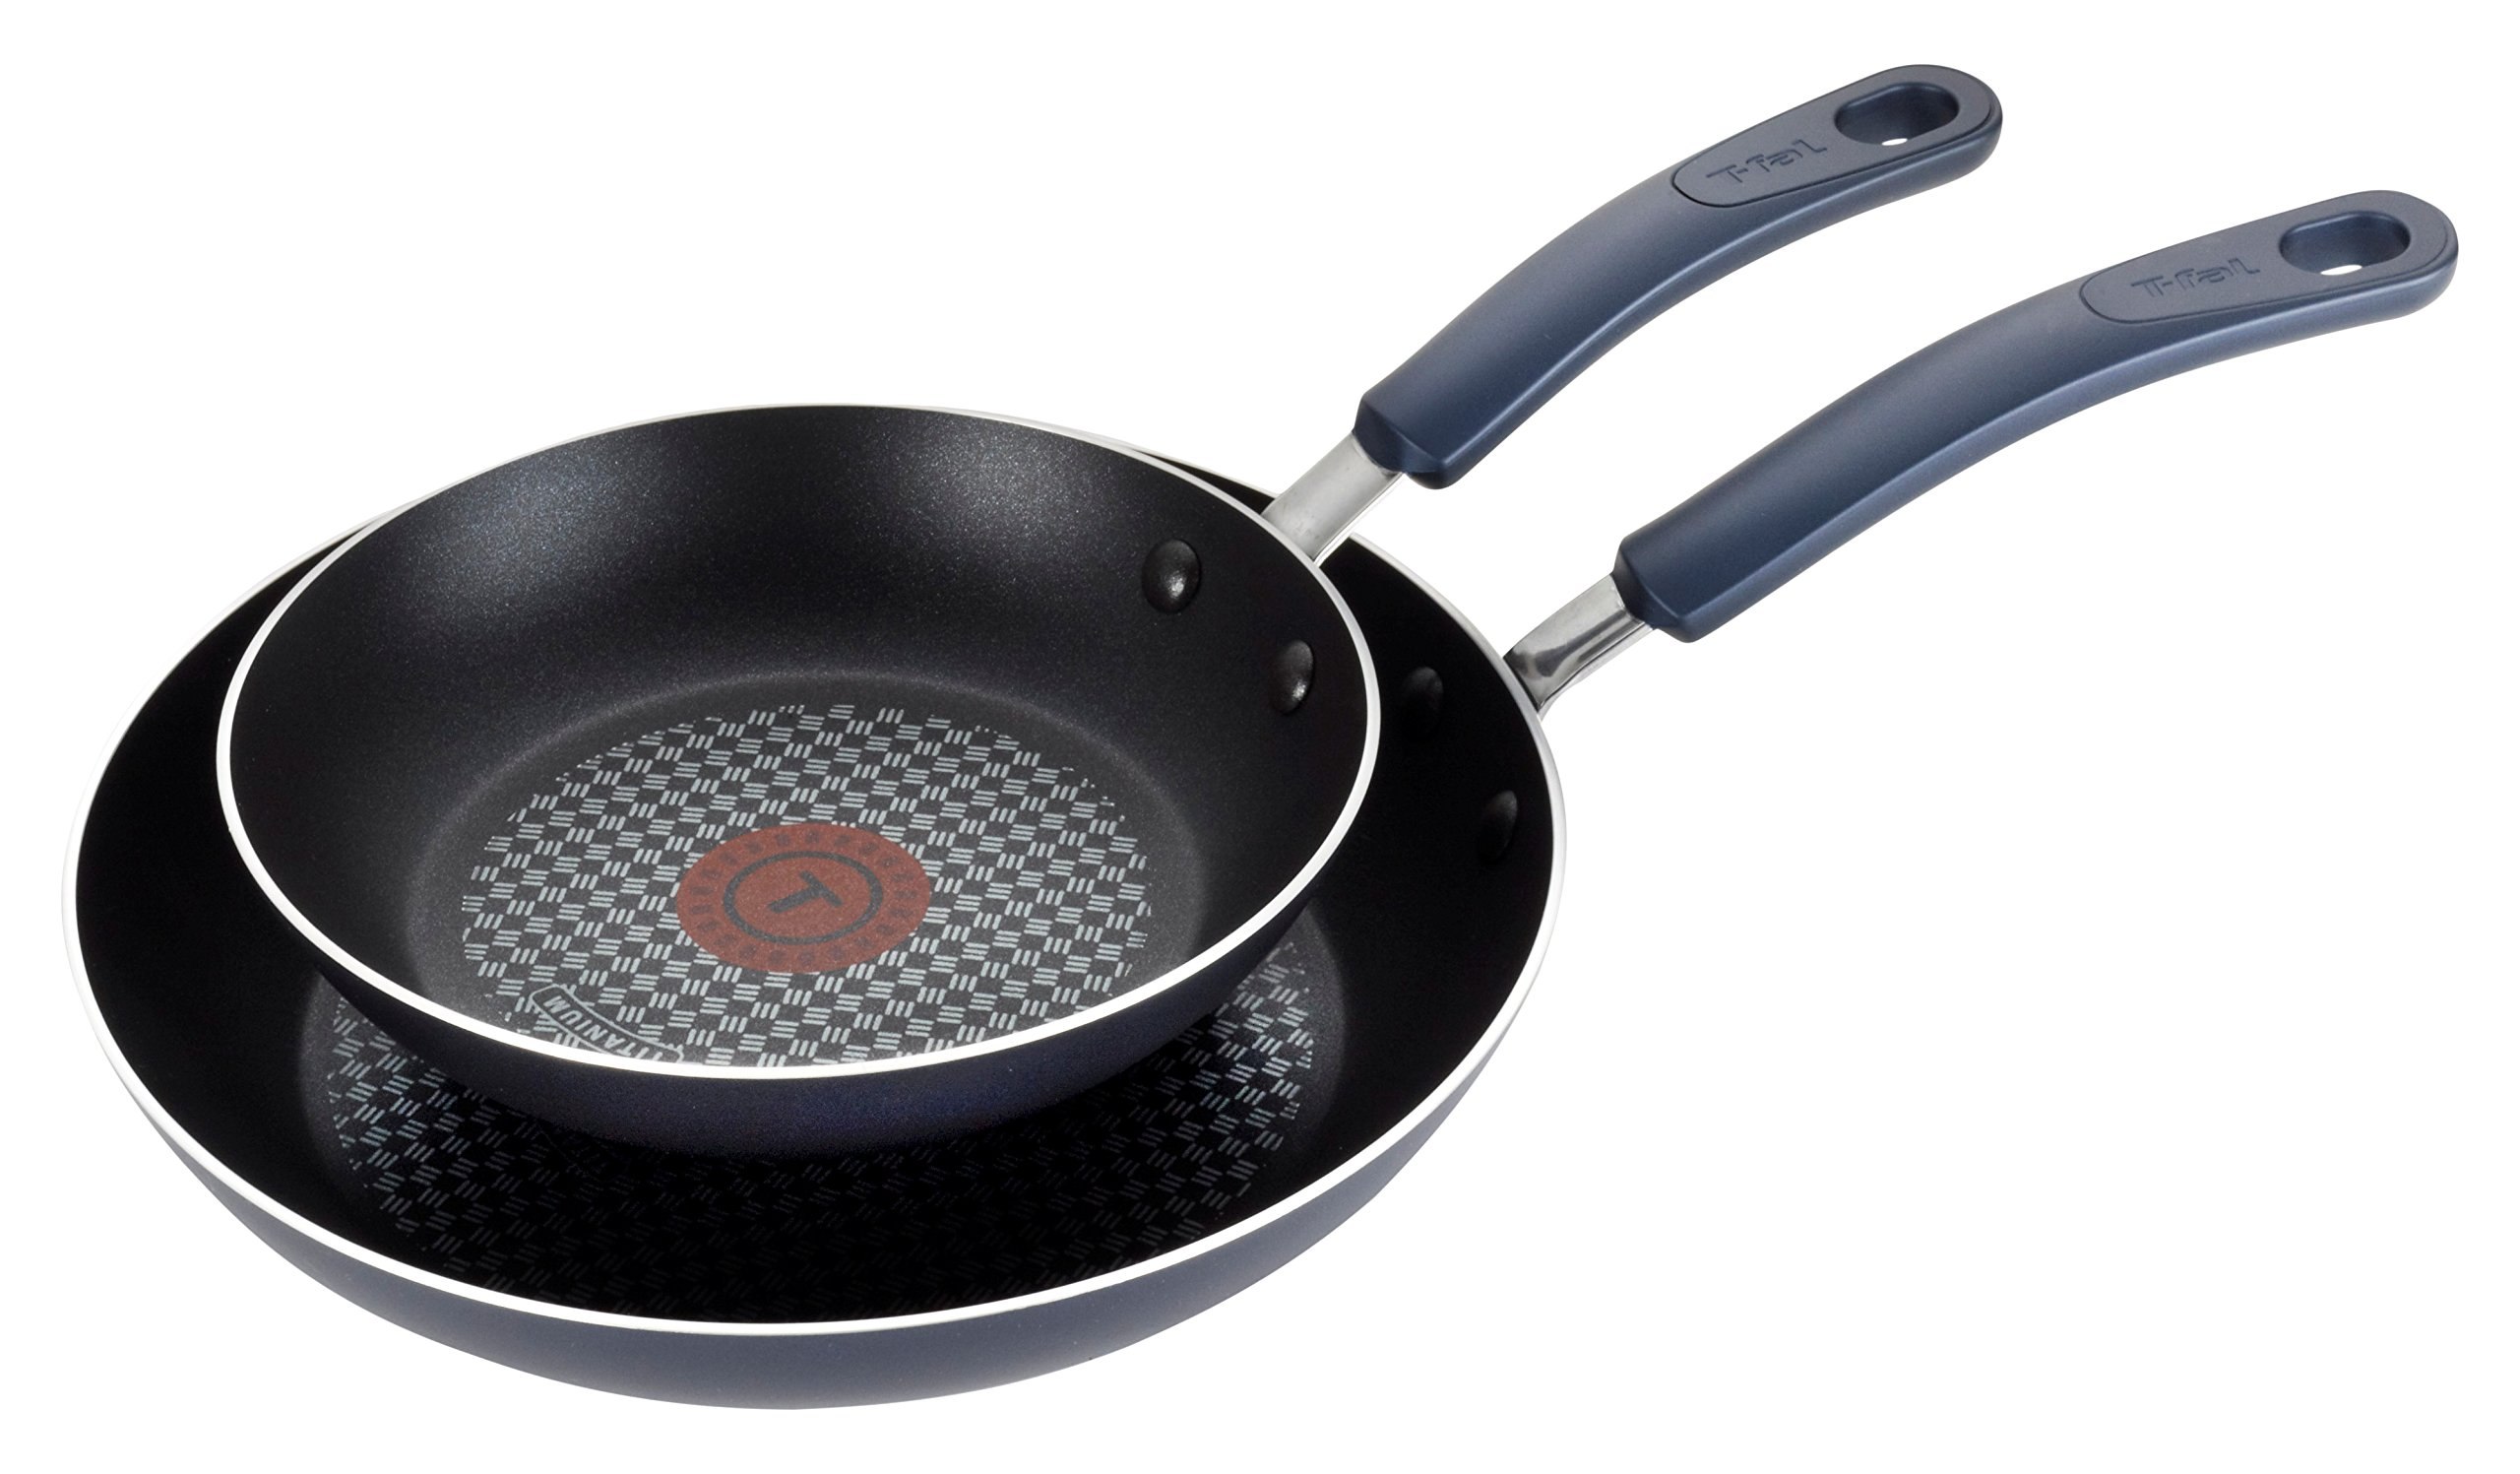 T-fal B129S2 Color Luxe Hard Titanium Nonstick Thermo-Spot Dishwasher Safe PFOA Free 8-Inch and 10-Inch Fry Pan Set Cookware, 2-Piece, Blue